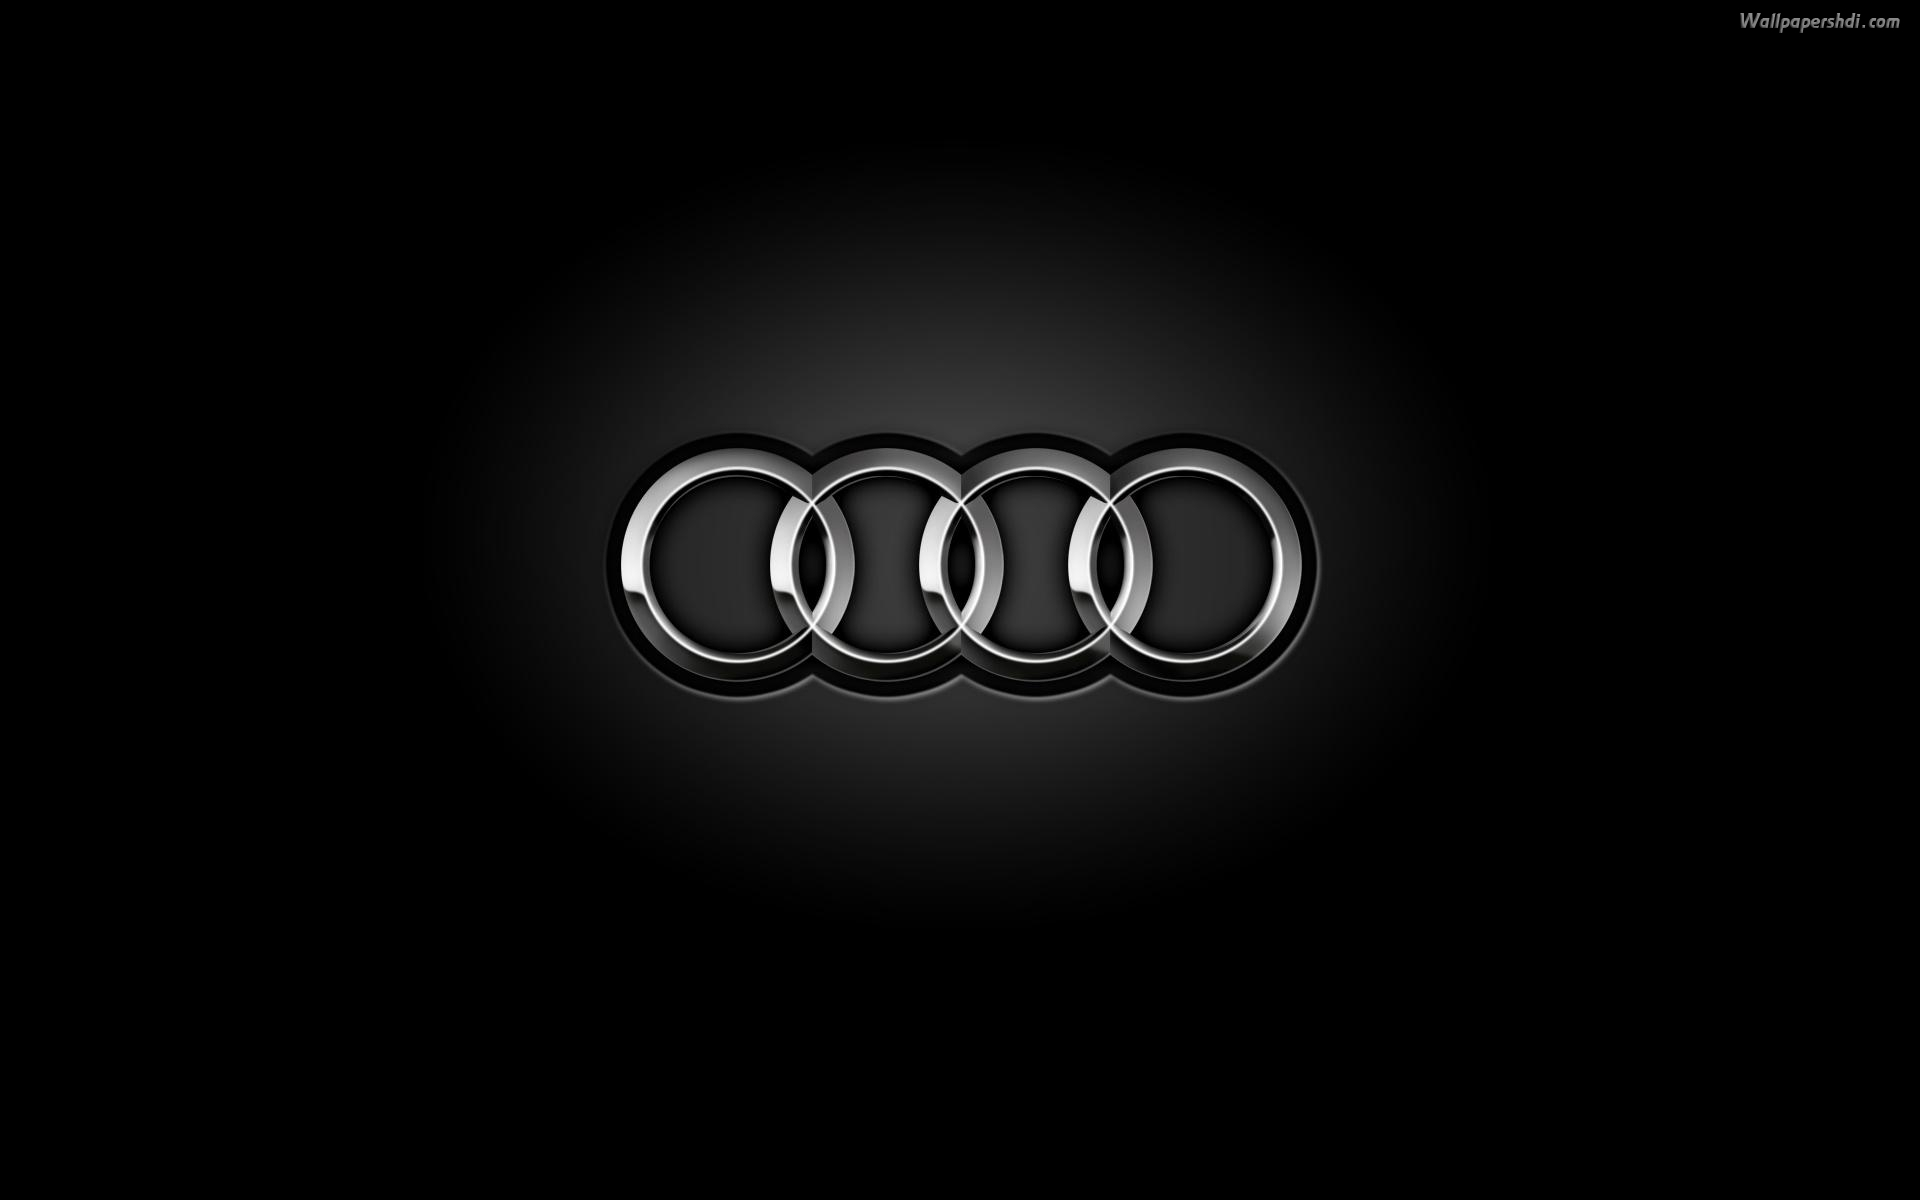 audi logo handy logo kostenlos hintergrundbild auf dein handy. Black Bedroom Furniture Sets. Home Design Ideas